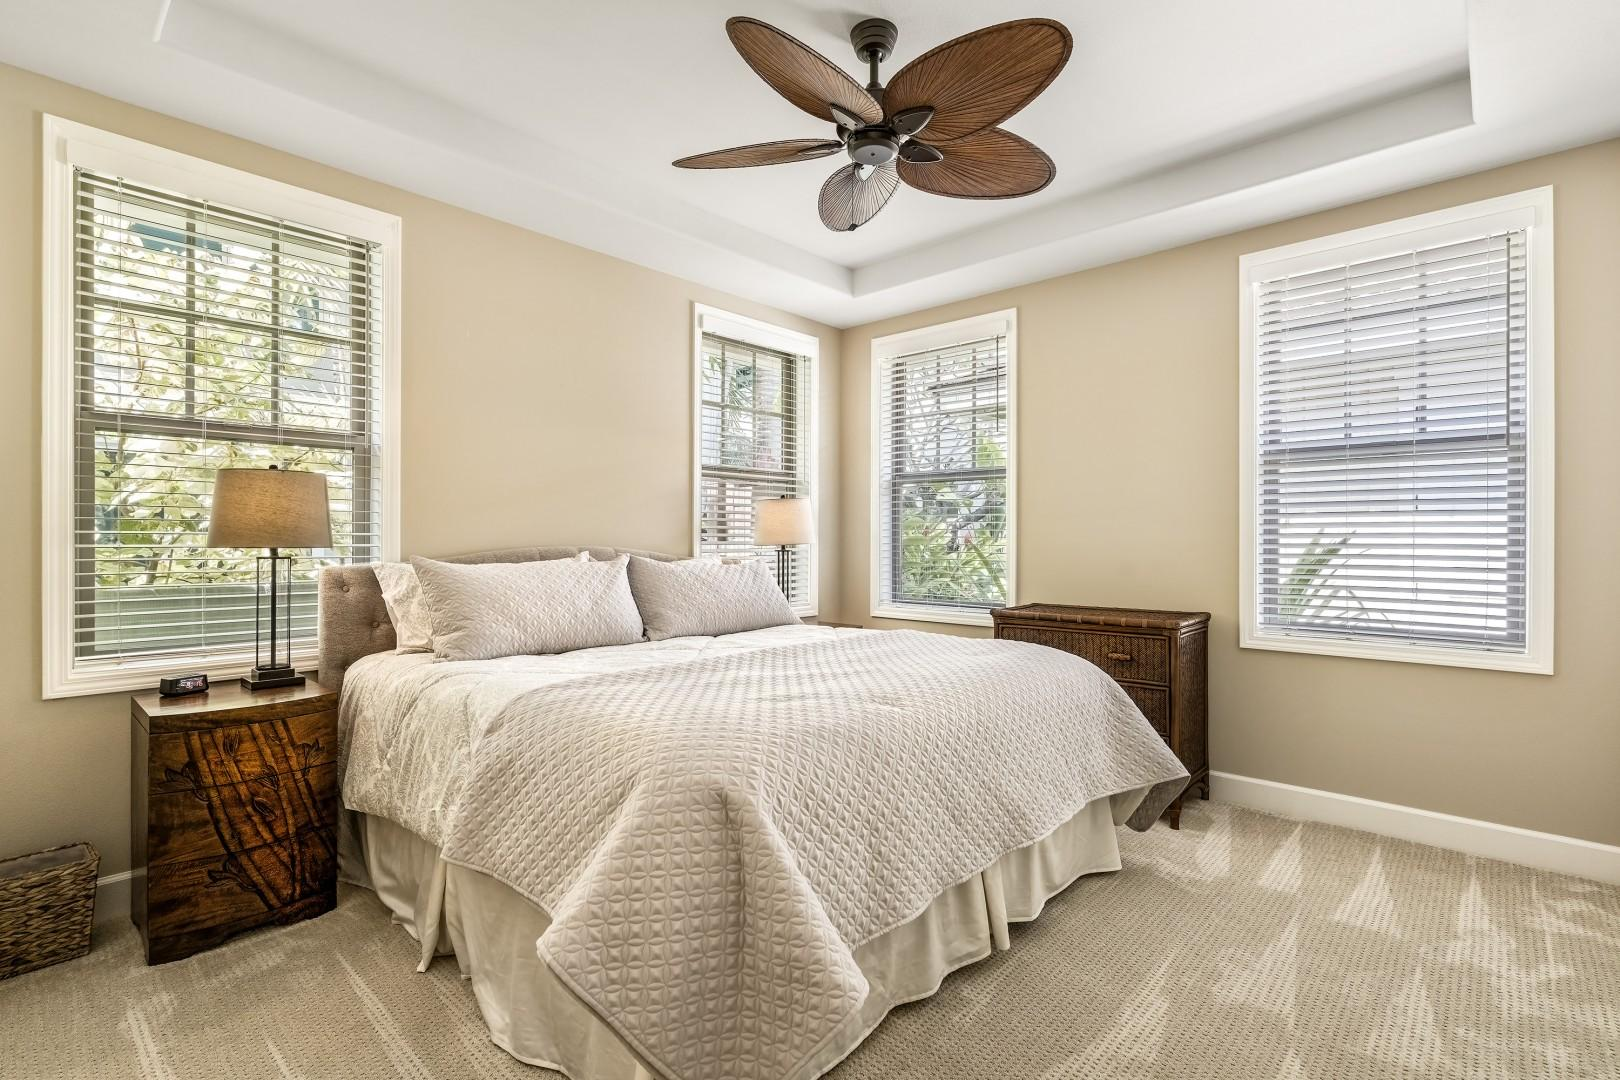 Guest bedroom equipped with King bed, A/C, and TV